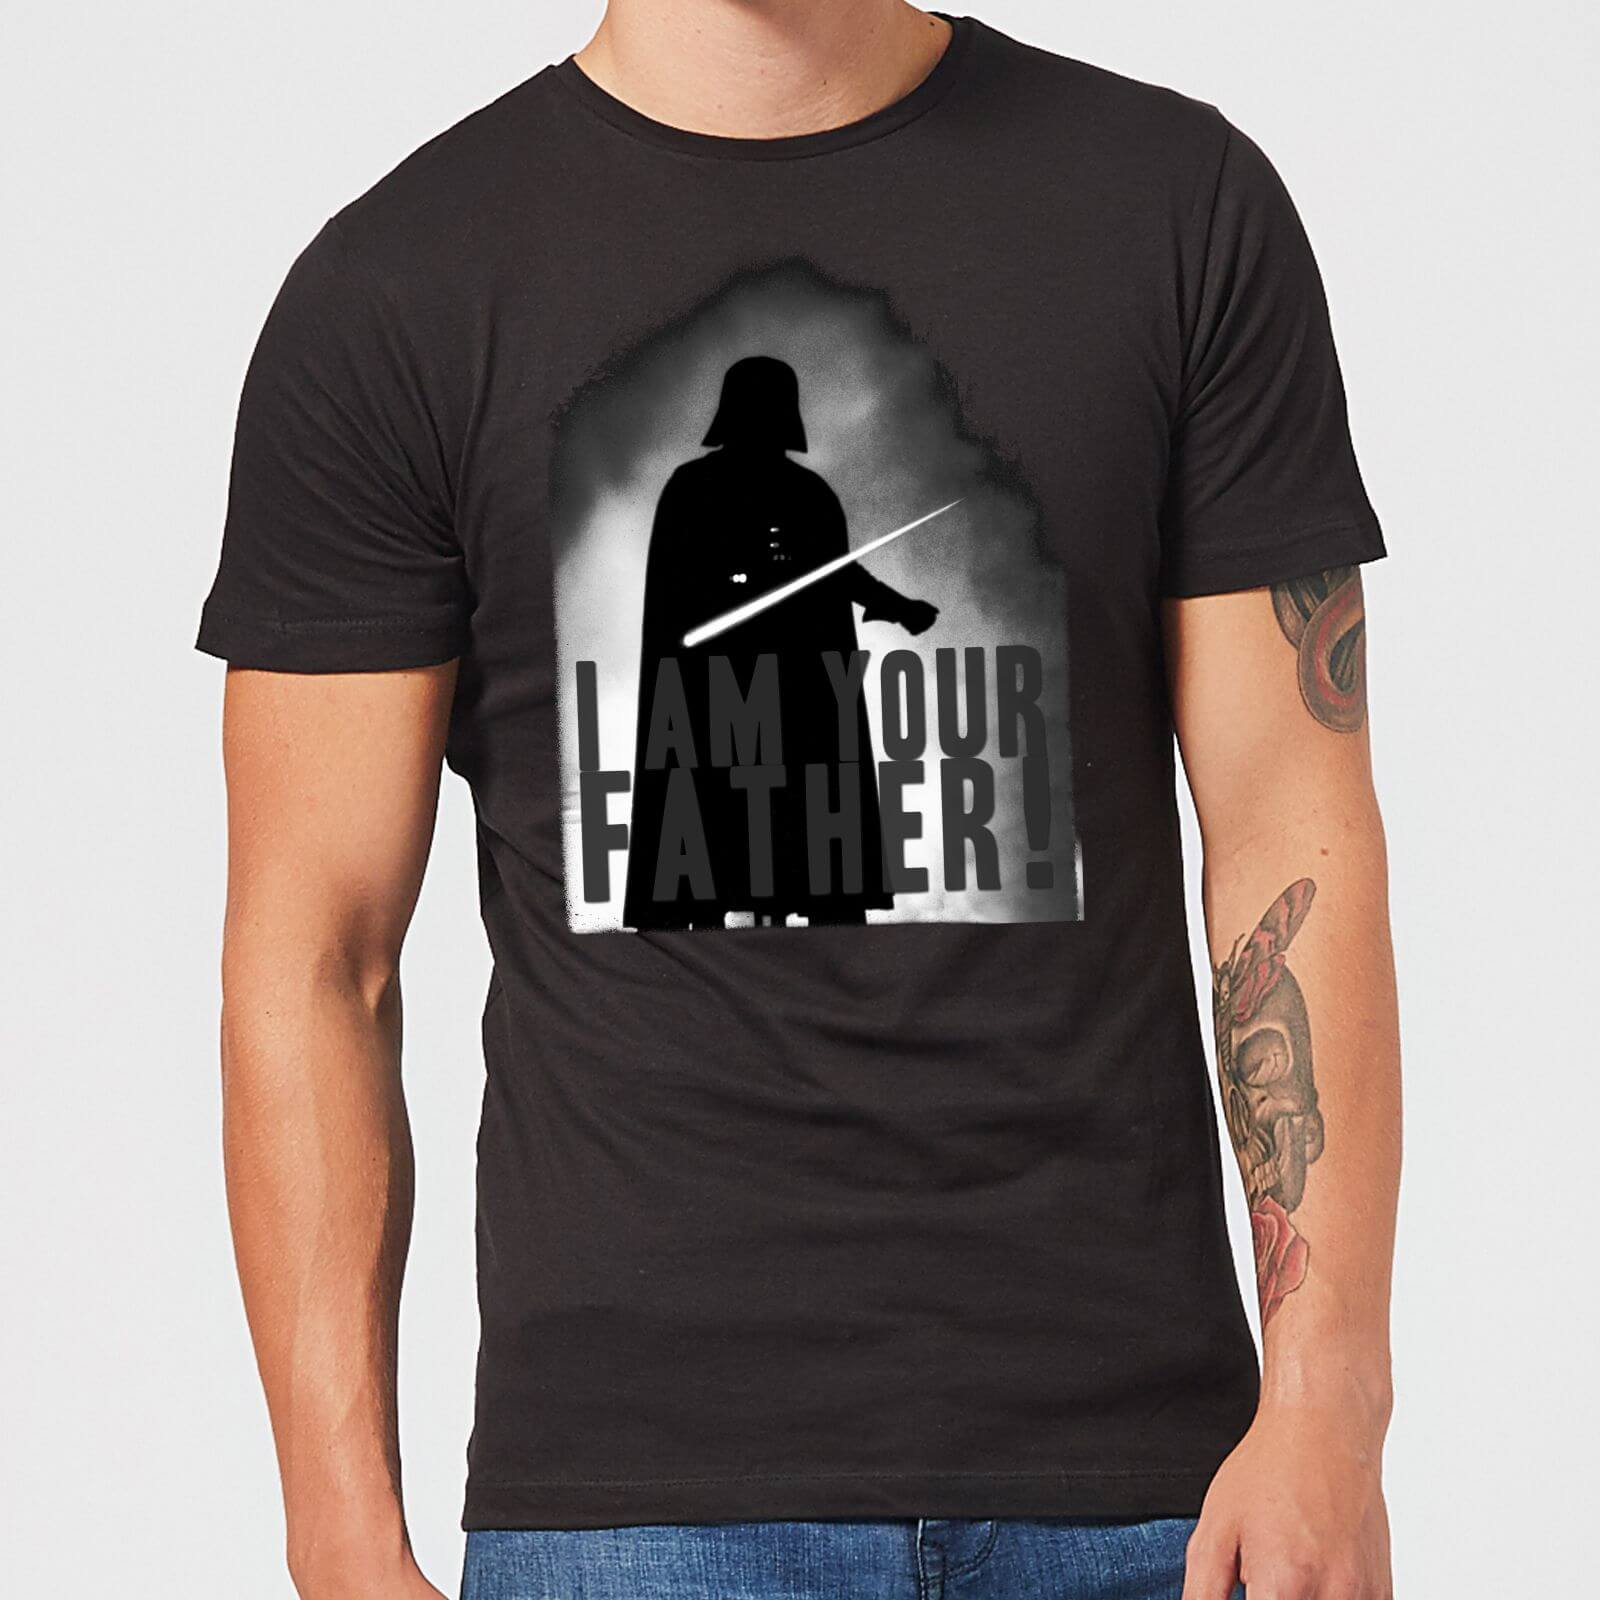 OfferteWeb.click 96-t-shirt-star-wars-darth-vader-i-am-your-father-silhouette